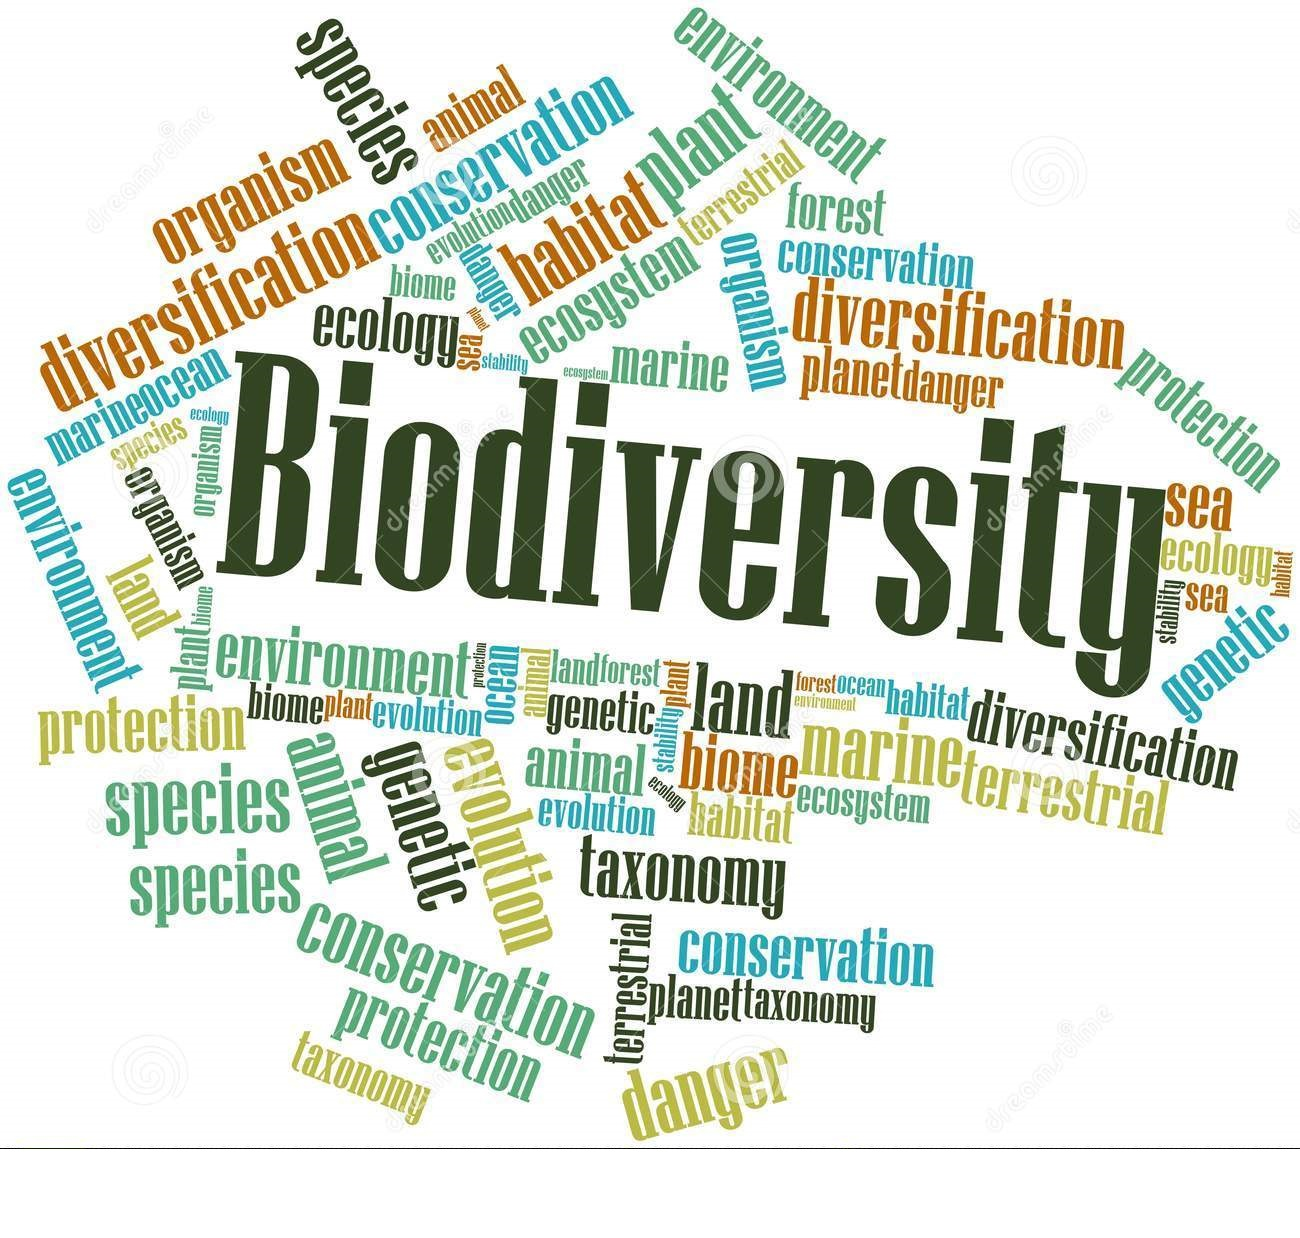 biodiversity on  biodiversity response policy suggestions eco technology solutions